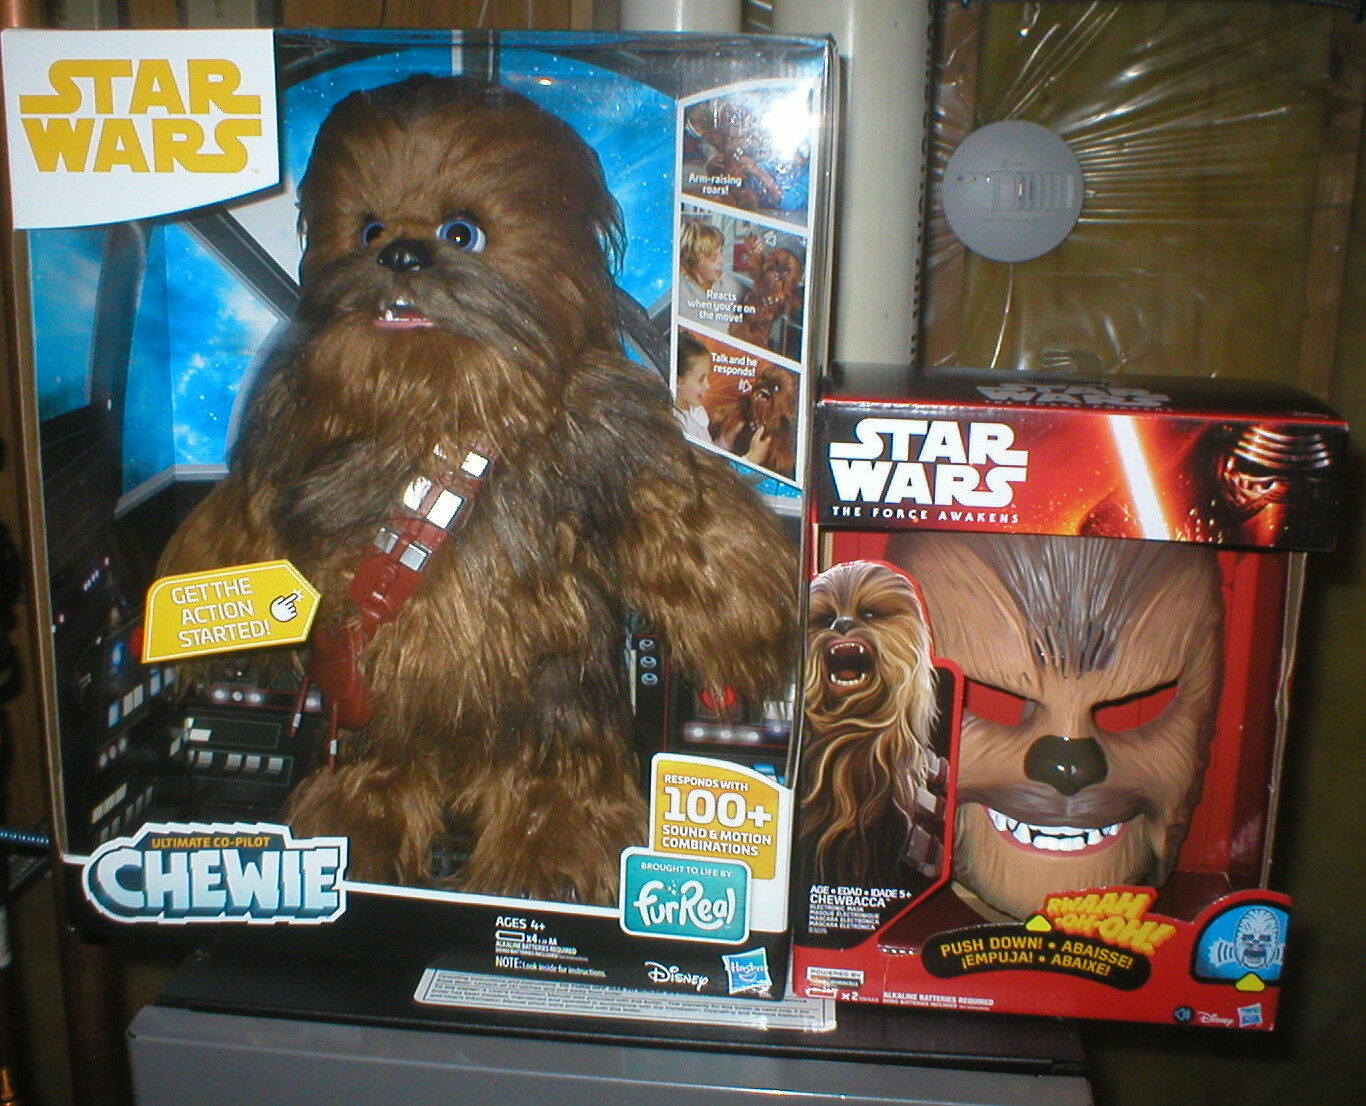 STAR WARS A SOLO STORY, ULTIMATE CO-PILOT CHEWBACCA, PLUS TALKING CHEWBACCA MASK